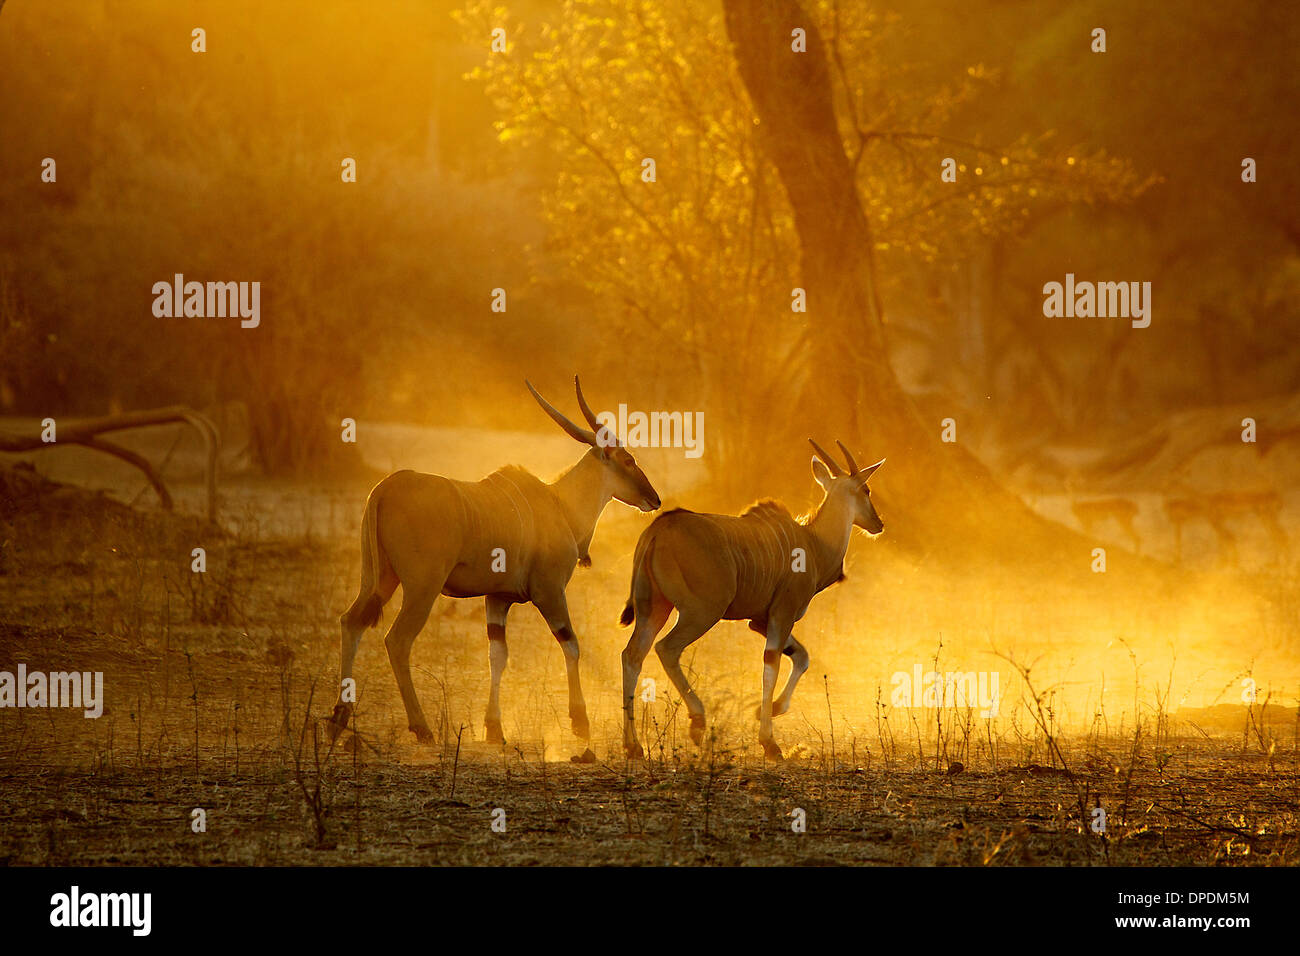 Eland running at dawn, Mana Pools national park, Zimbabwe, Africa - Stock Image